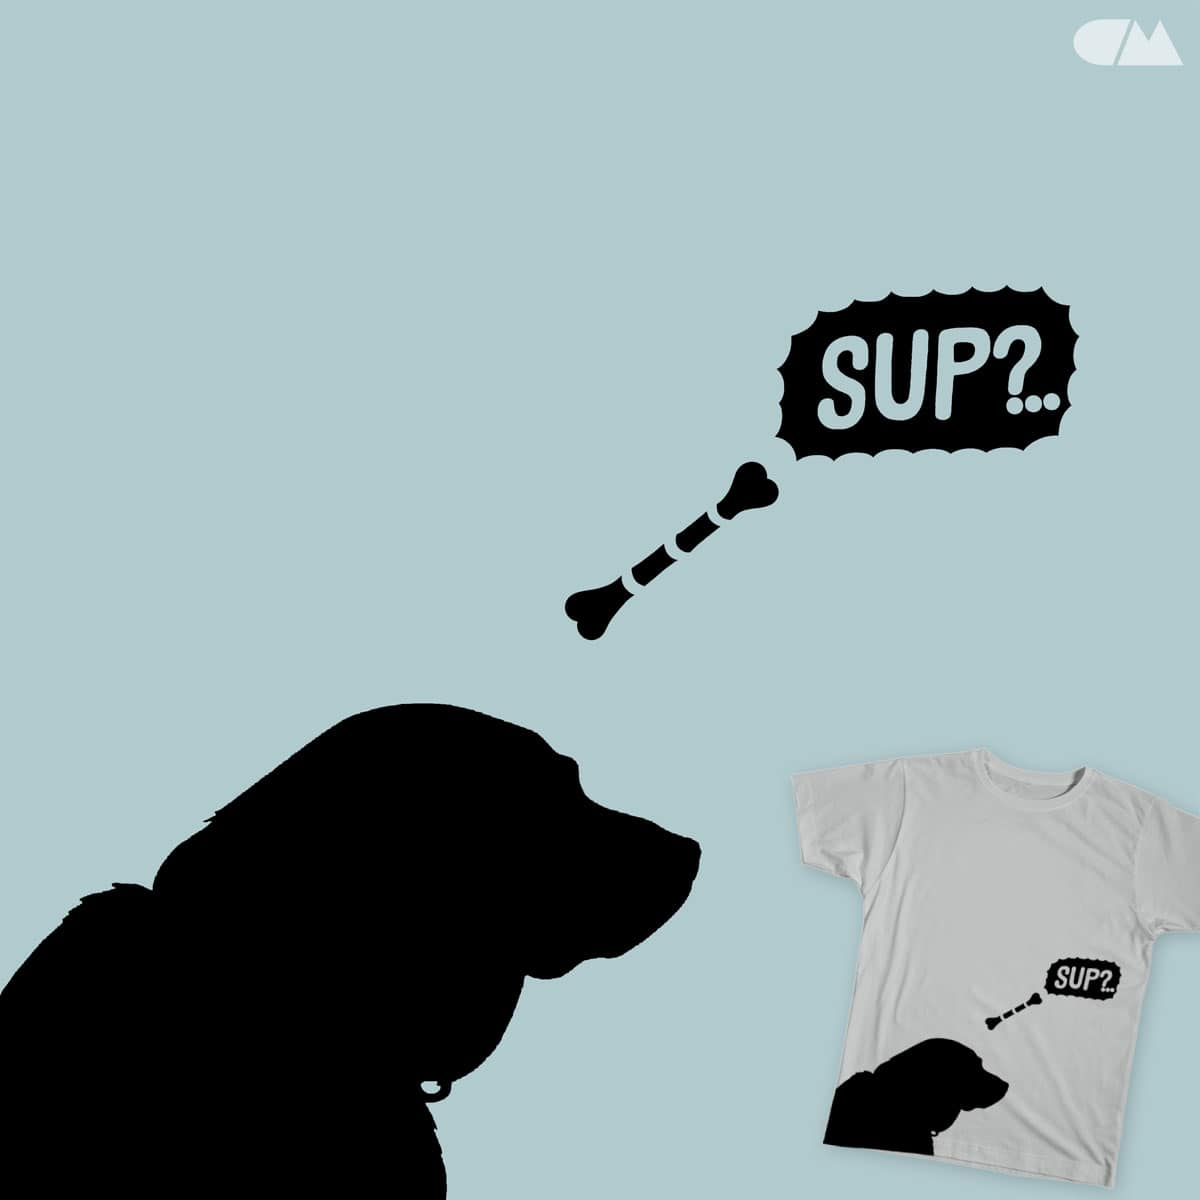 Sup Dog?.. by angchor on Threadless